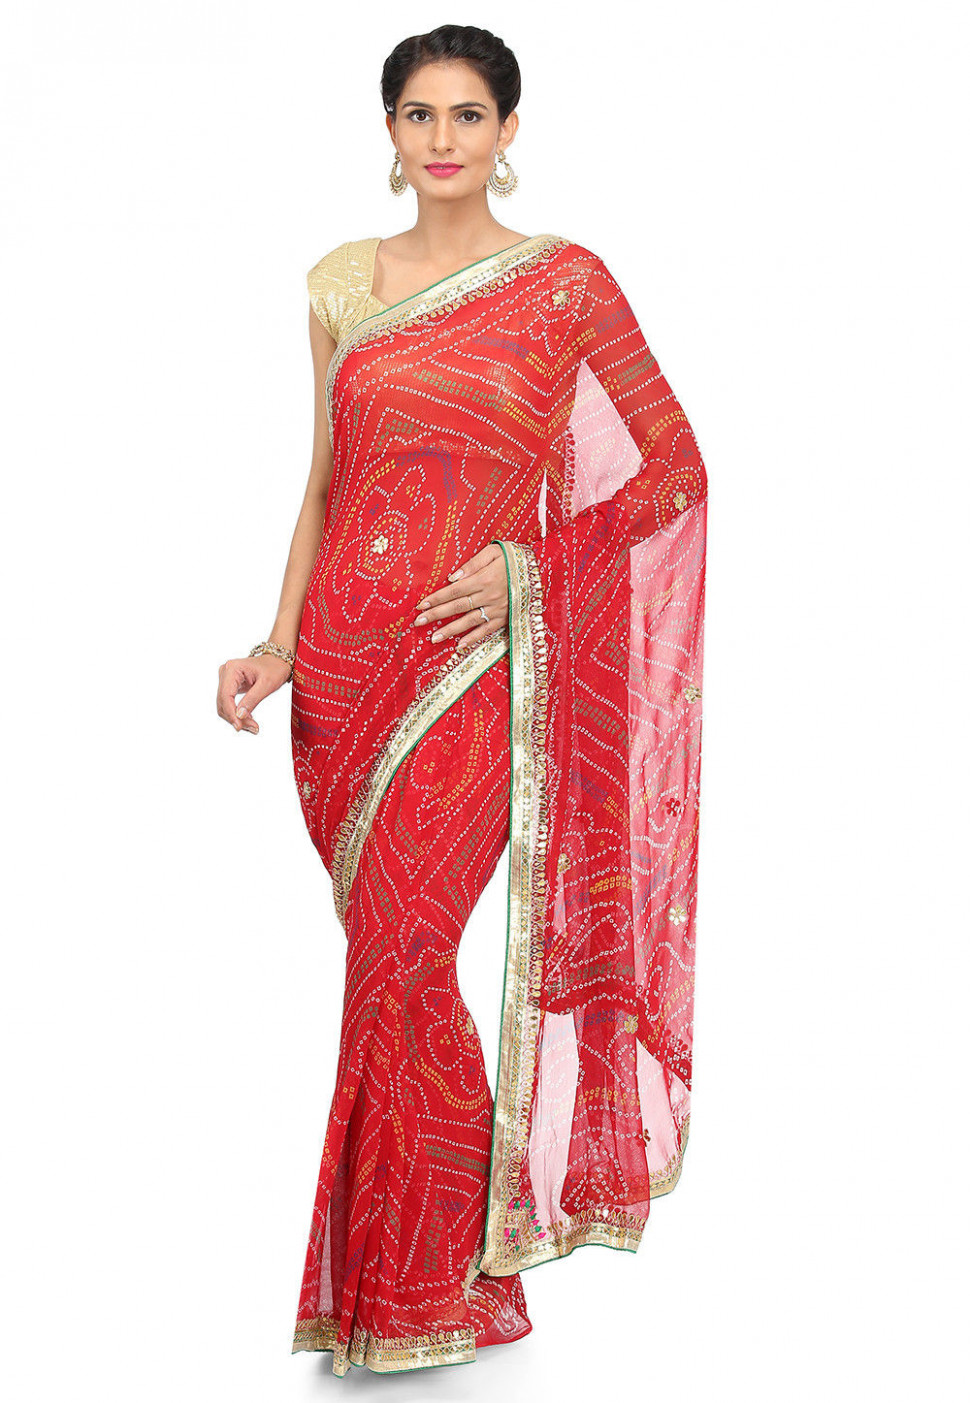 Bandhej Georgette Saree in Red : SJN7190 - bandhej saree